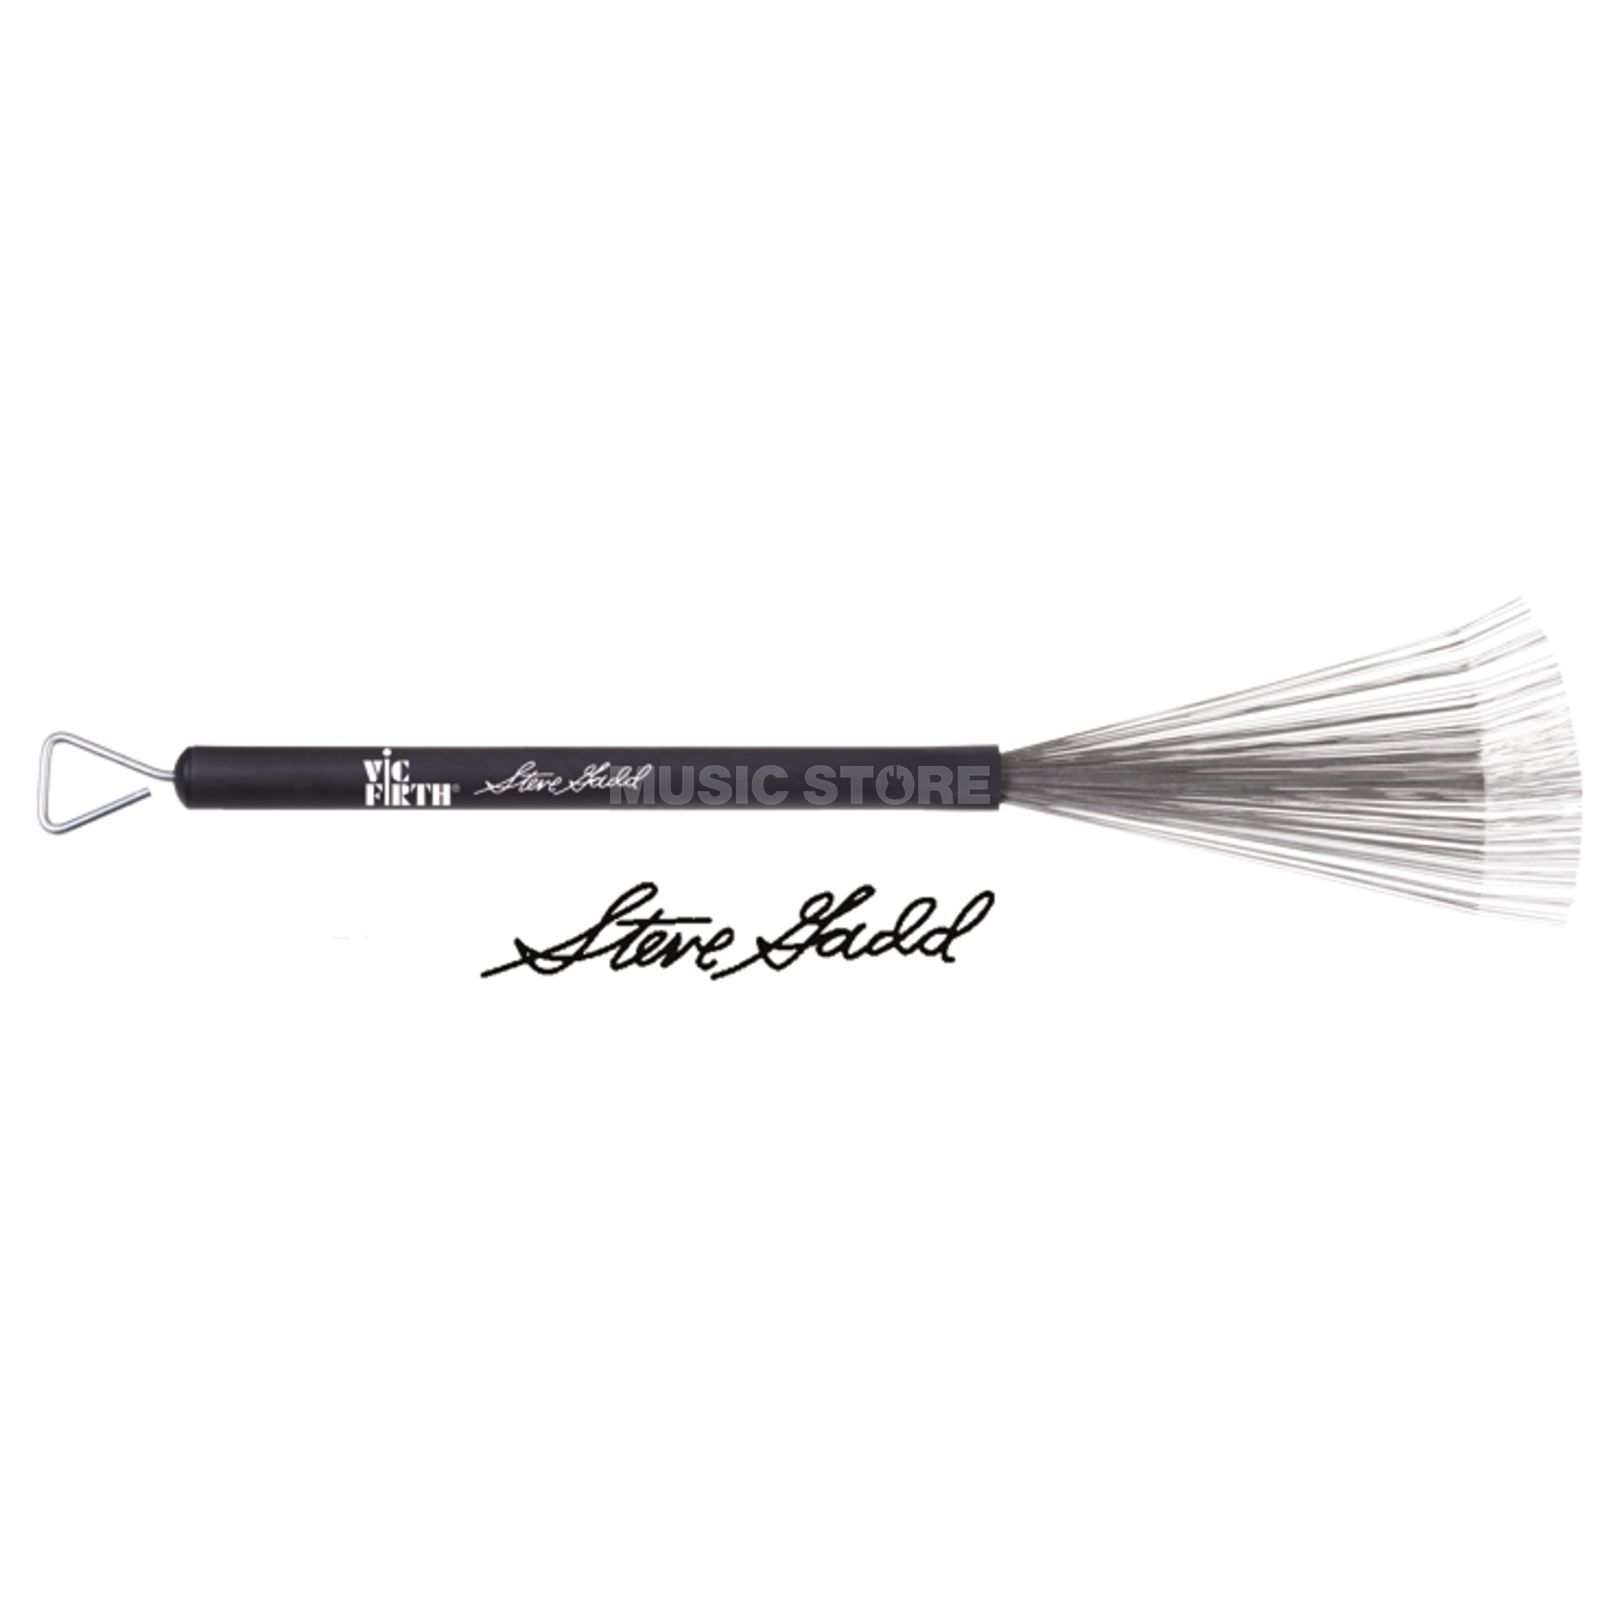 Vic-Firth Steve Gadd Wire Brushes SGWB, Signature Series Produktbillede